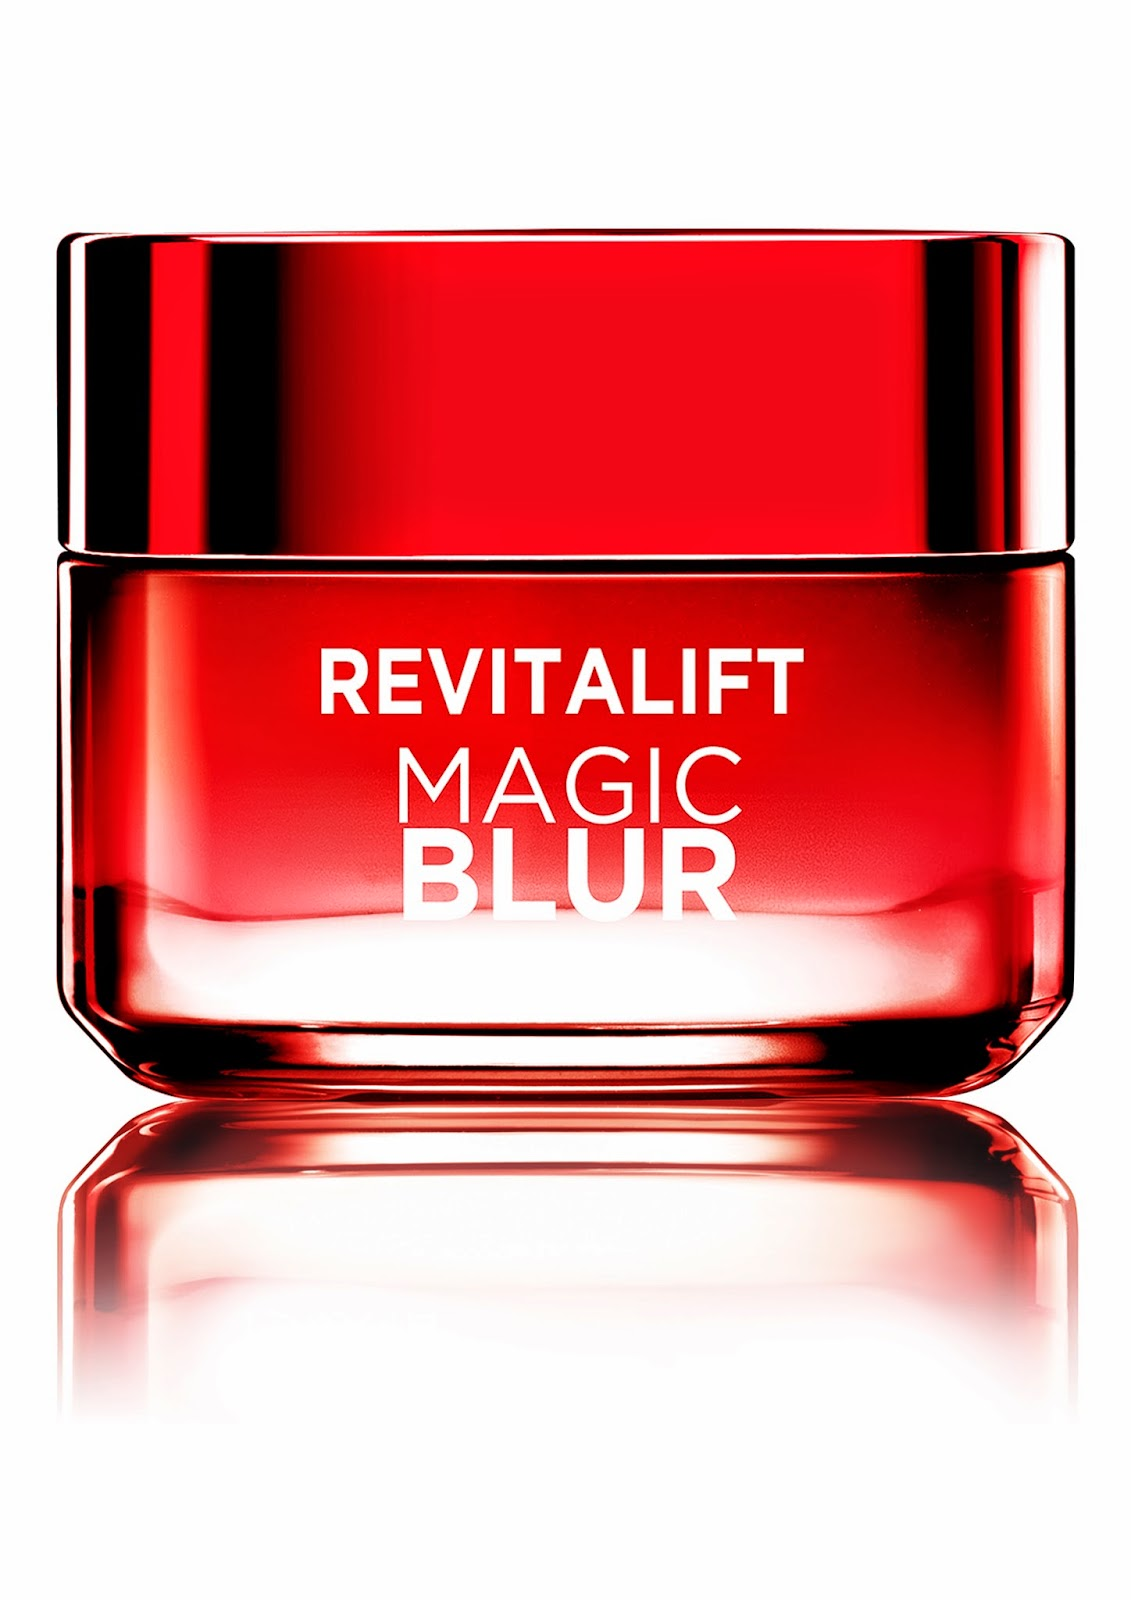 Magic Blur By Loral Paris Revitalift Launch Review Rockstarmomma Milky Cleansing Foam Indeed Works Like On The Skin Reducing Facial Lines Visibility Pore And Roughness In Just A Matter Of Seconds